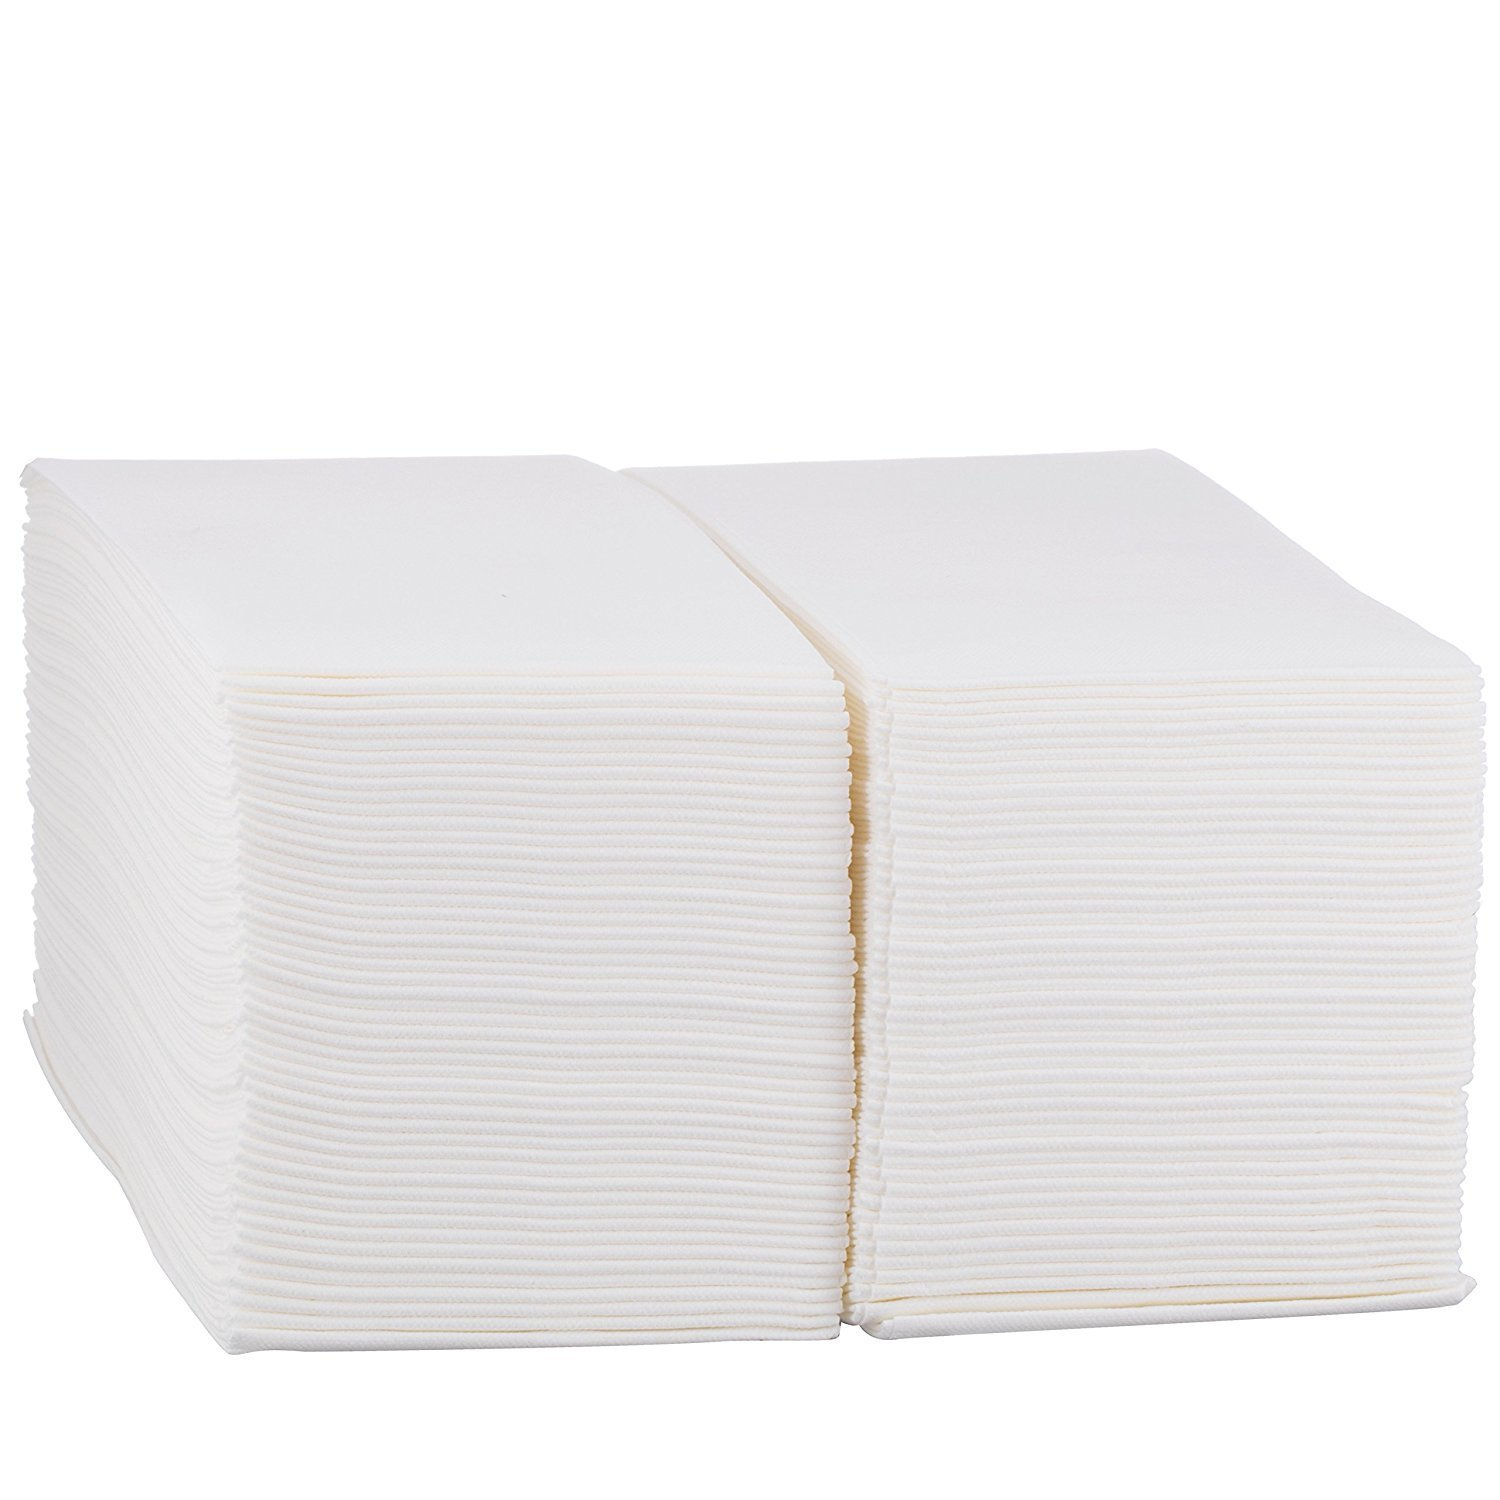 Disposable Cloth-Like Paper Hand Guest Towels - Soft, Absorbent, Air laid Tissue Paper for Kitchen, Bathroom or Events, White Guest Towel (100)